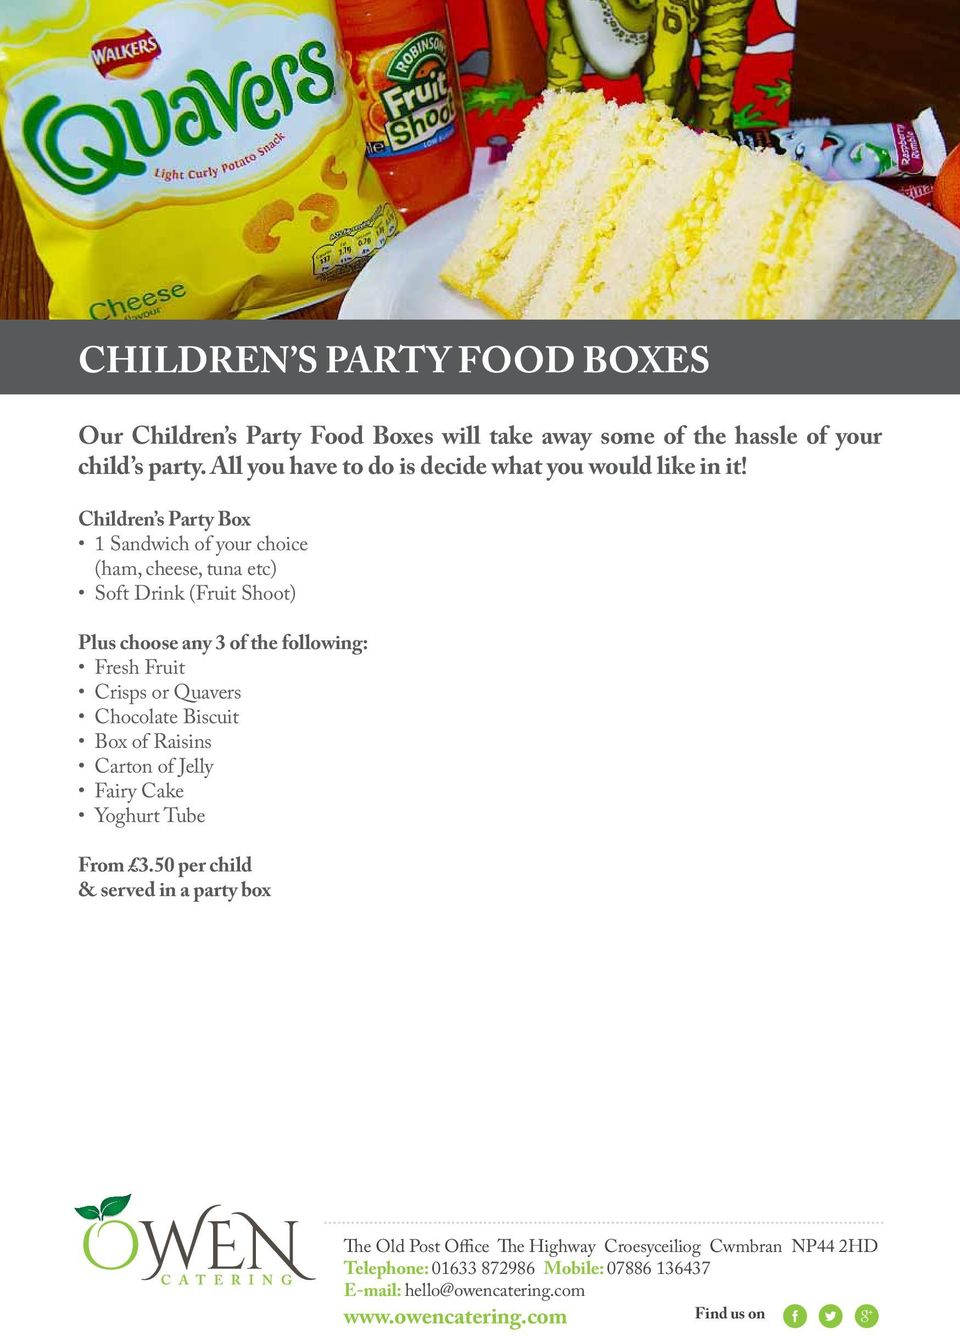 Children s Party Box 1 Sandwich of your choice (ham, cheese, tuna etc) Soft Drink (Fruit Shoot) Plus choose